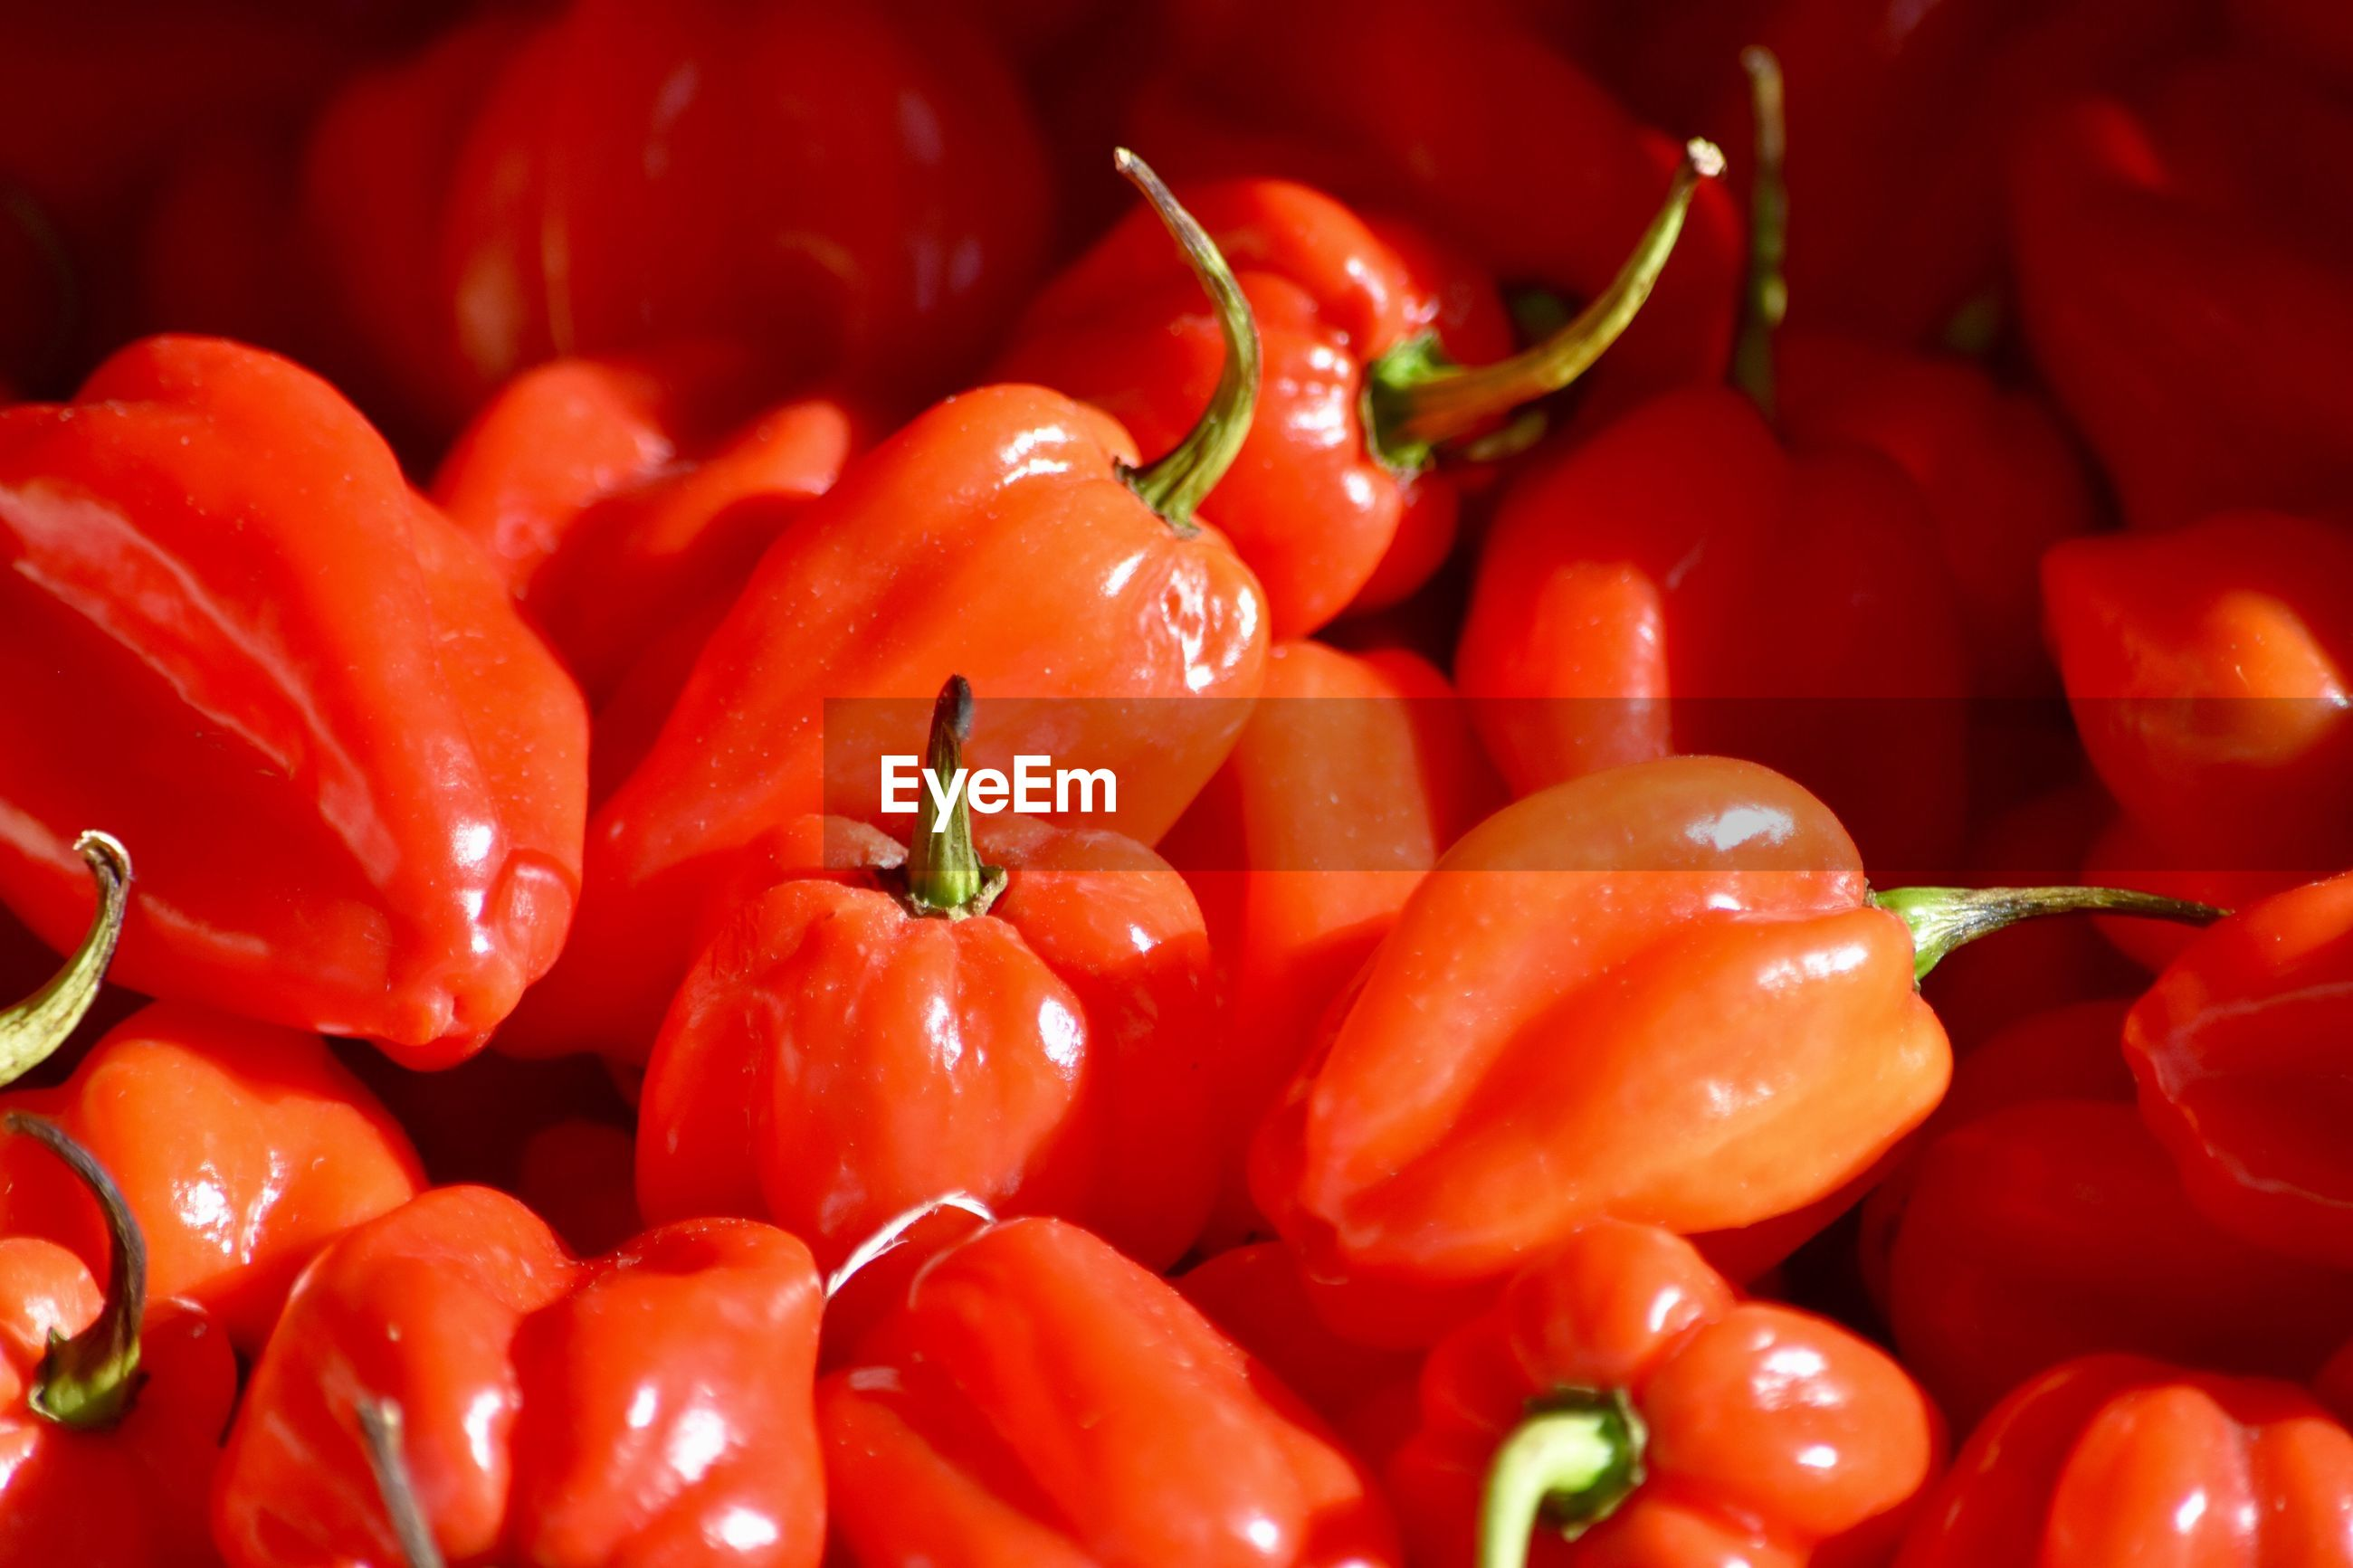 Full frame shot of red chili peppers for sale at market during sunny day